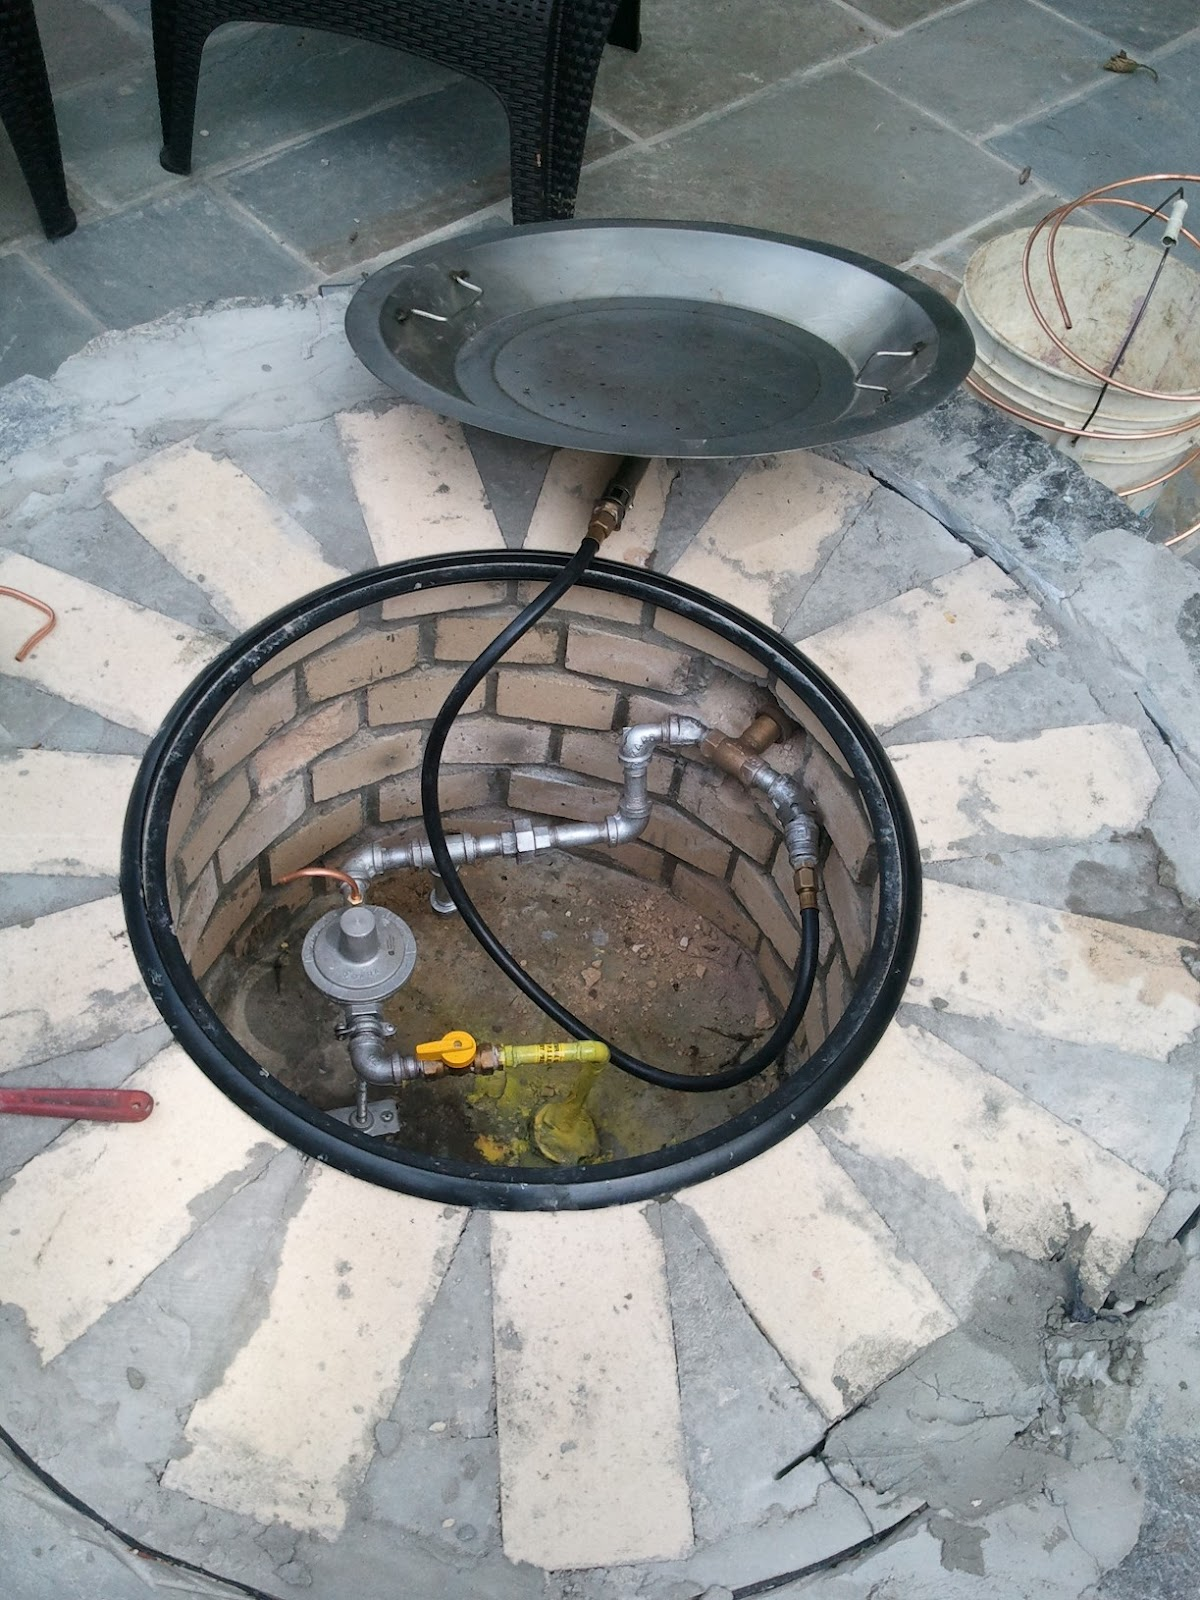 Gas Line and Fire Pit Installation - Kramer & Sons Plumbing, Heating & Air Conditioning: Gas Line And